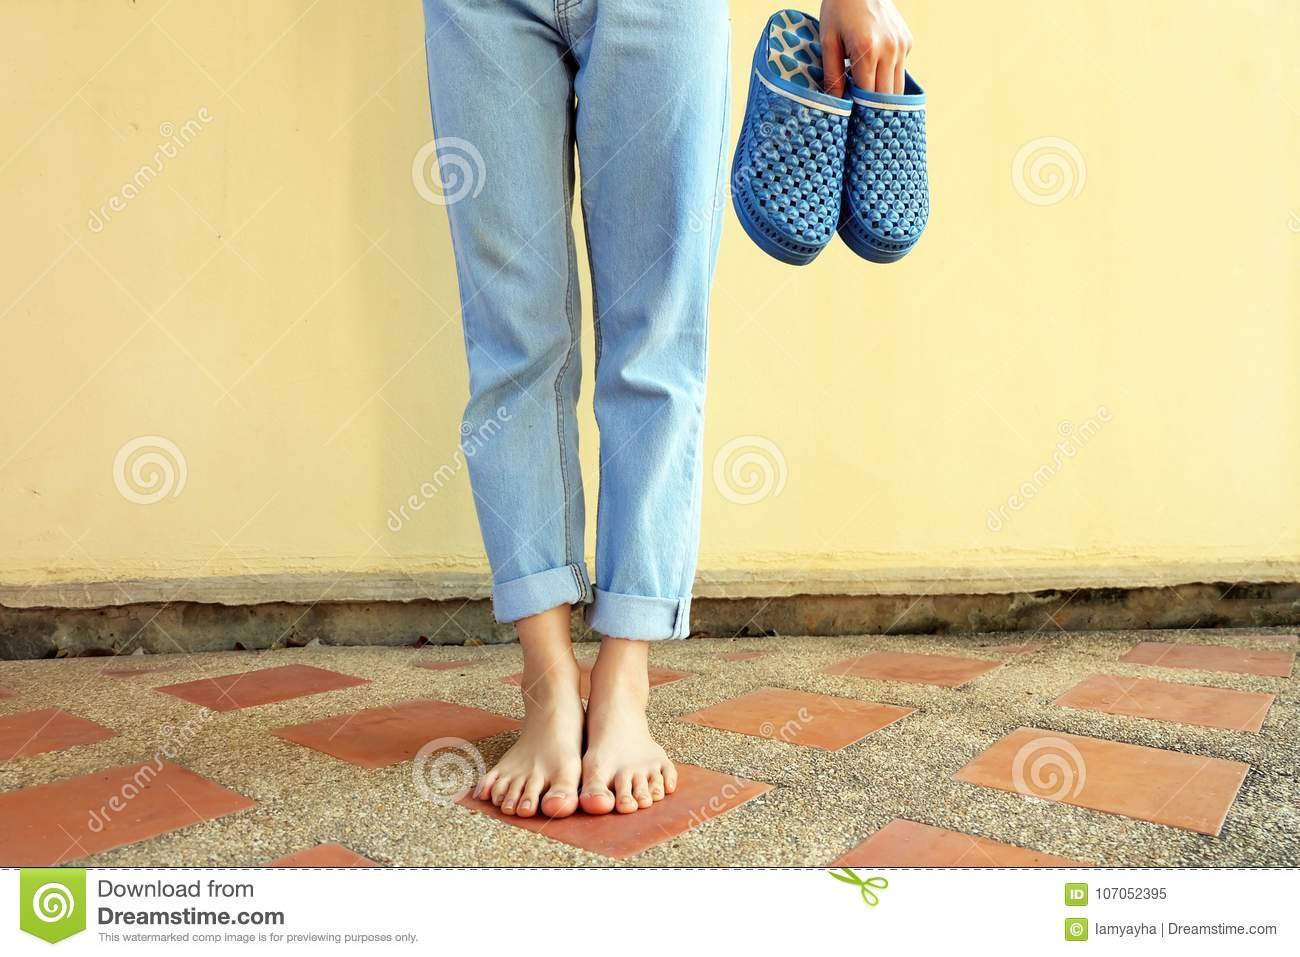 bd98f4d55692 Blue flip flops fashion. Woman wear blue sandals and blue jeans stand on  the tile